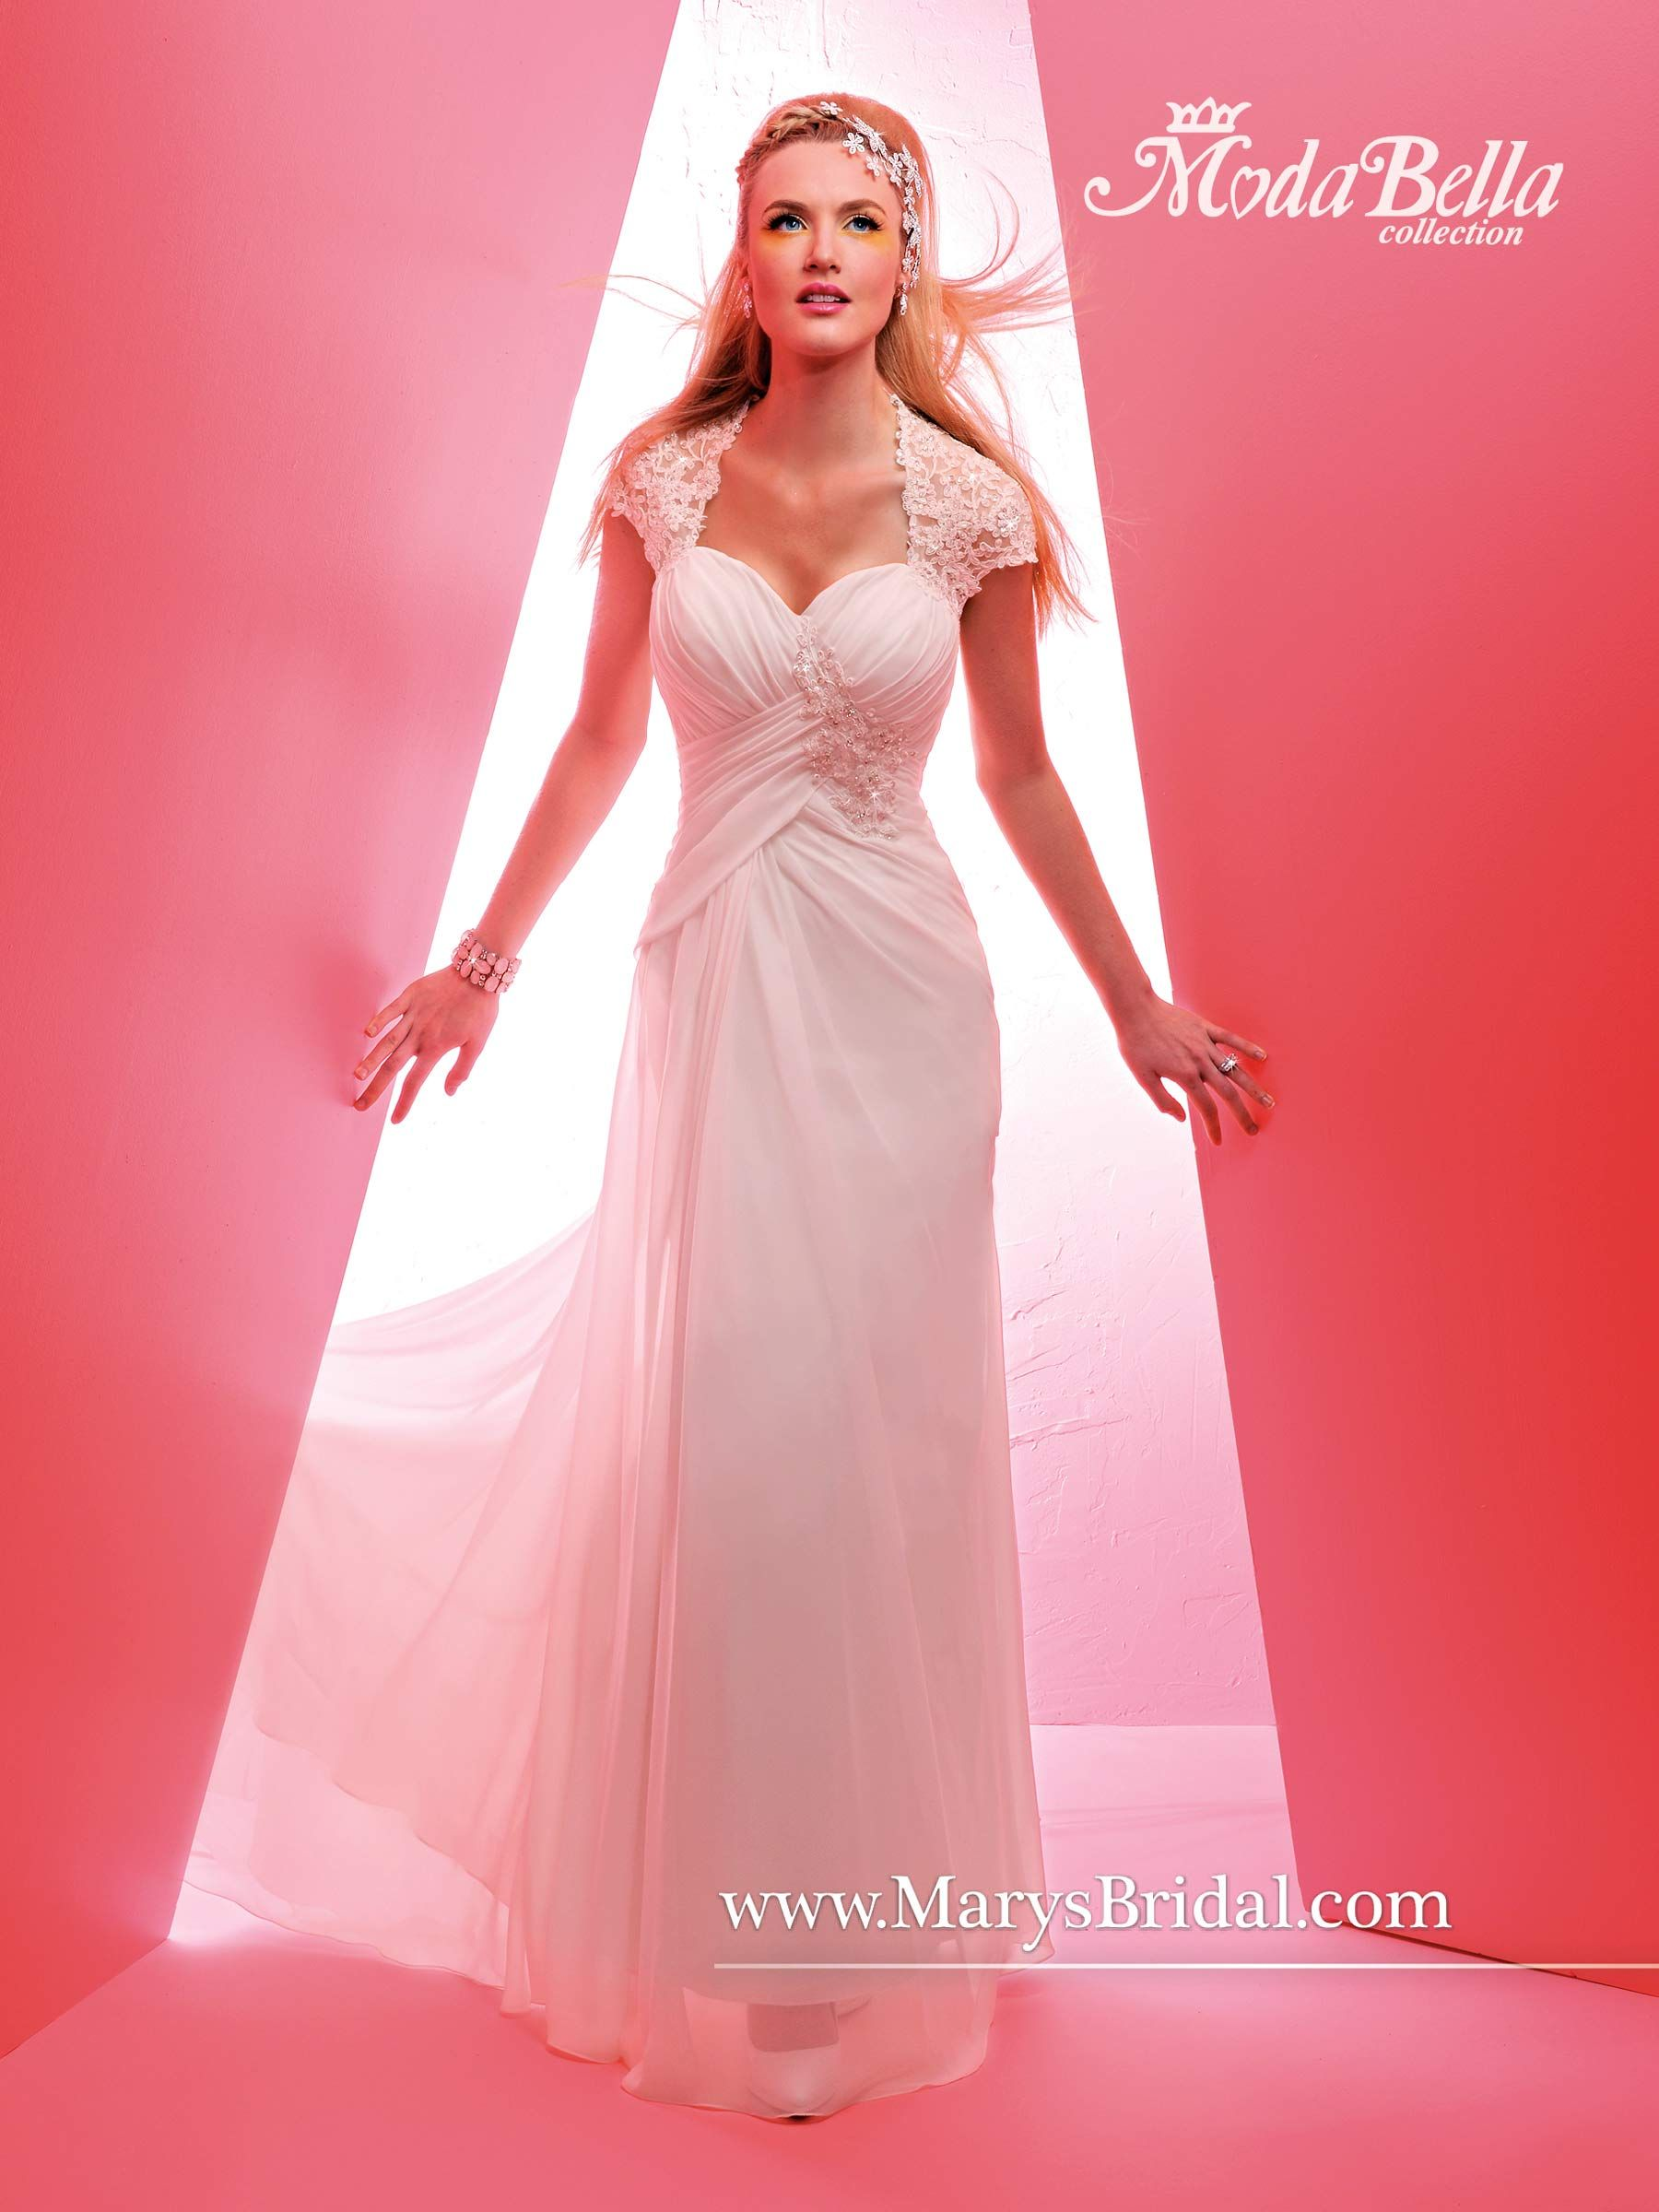 Bridal Gowns - Moda Bella - Style: 3Y342 by Mary\'s Bridal Gowns ...